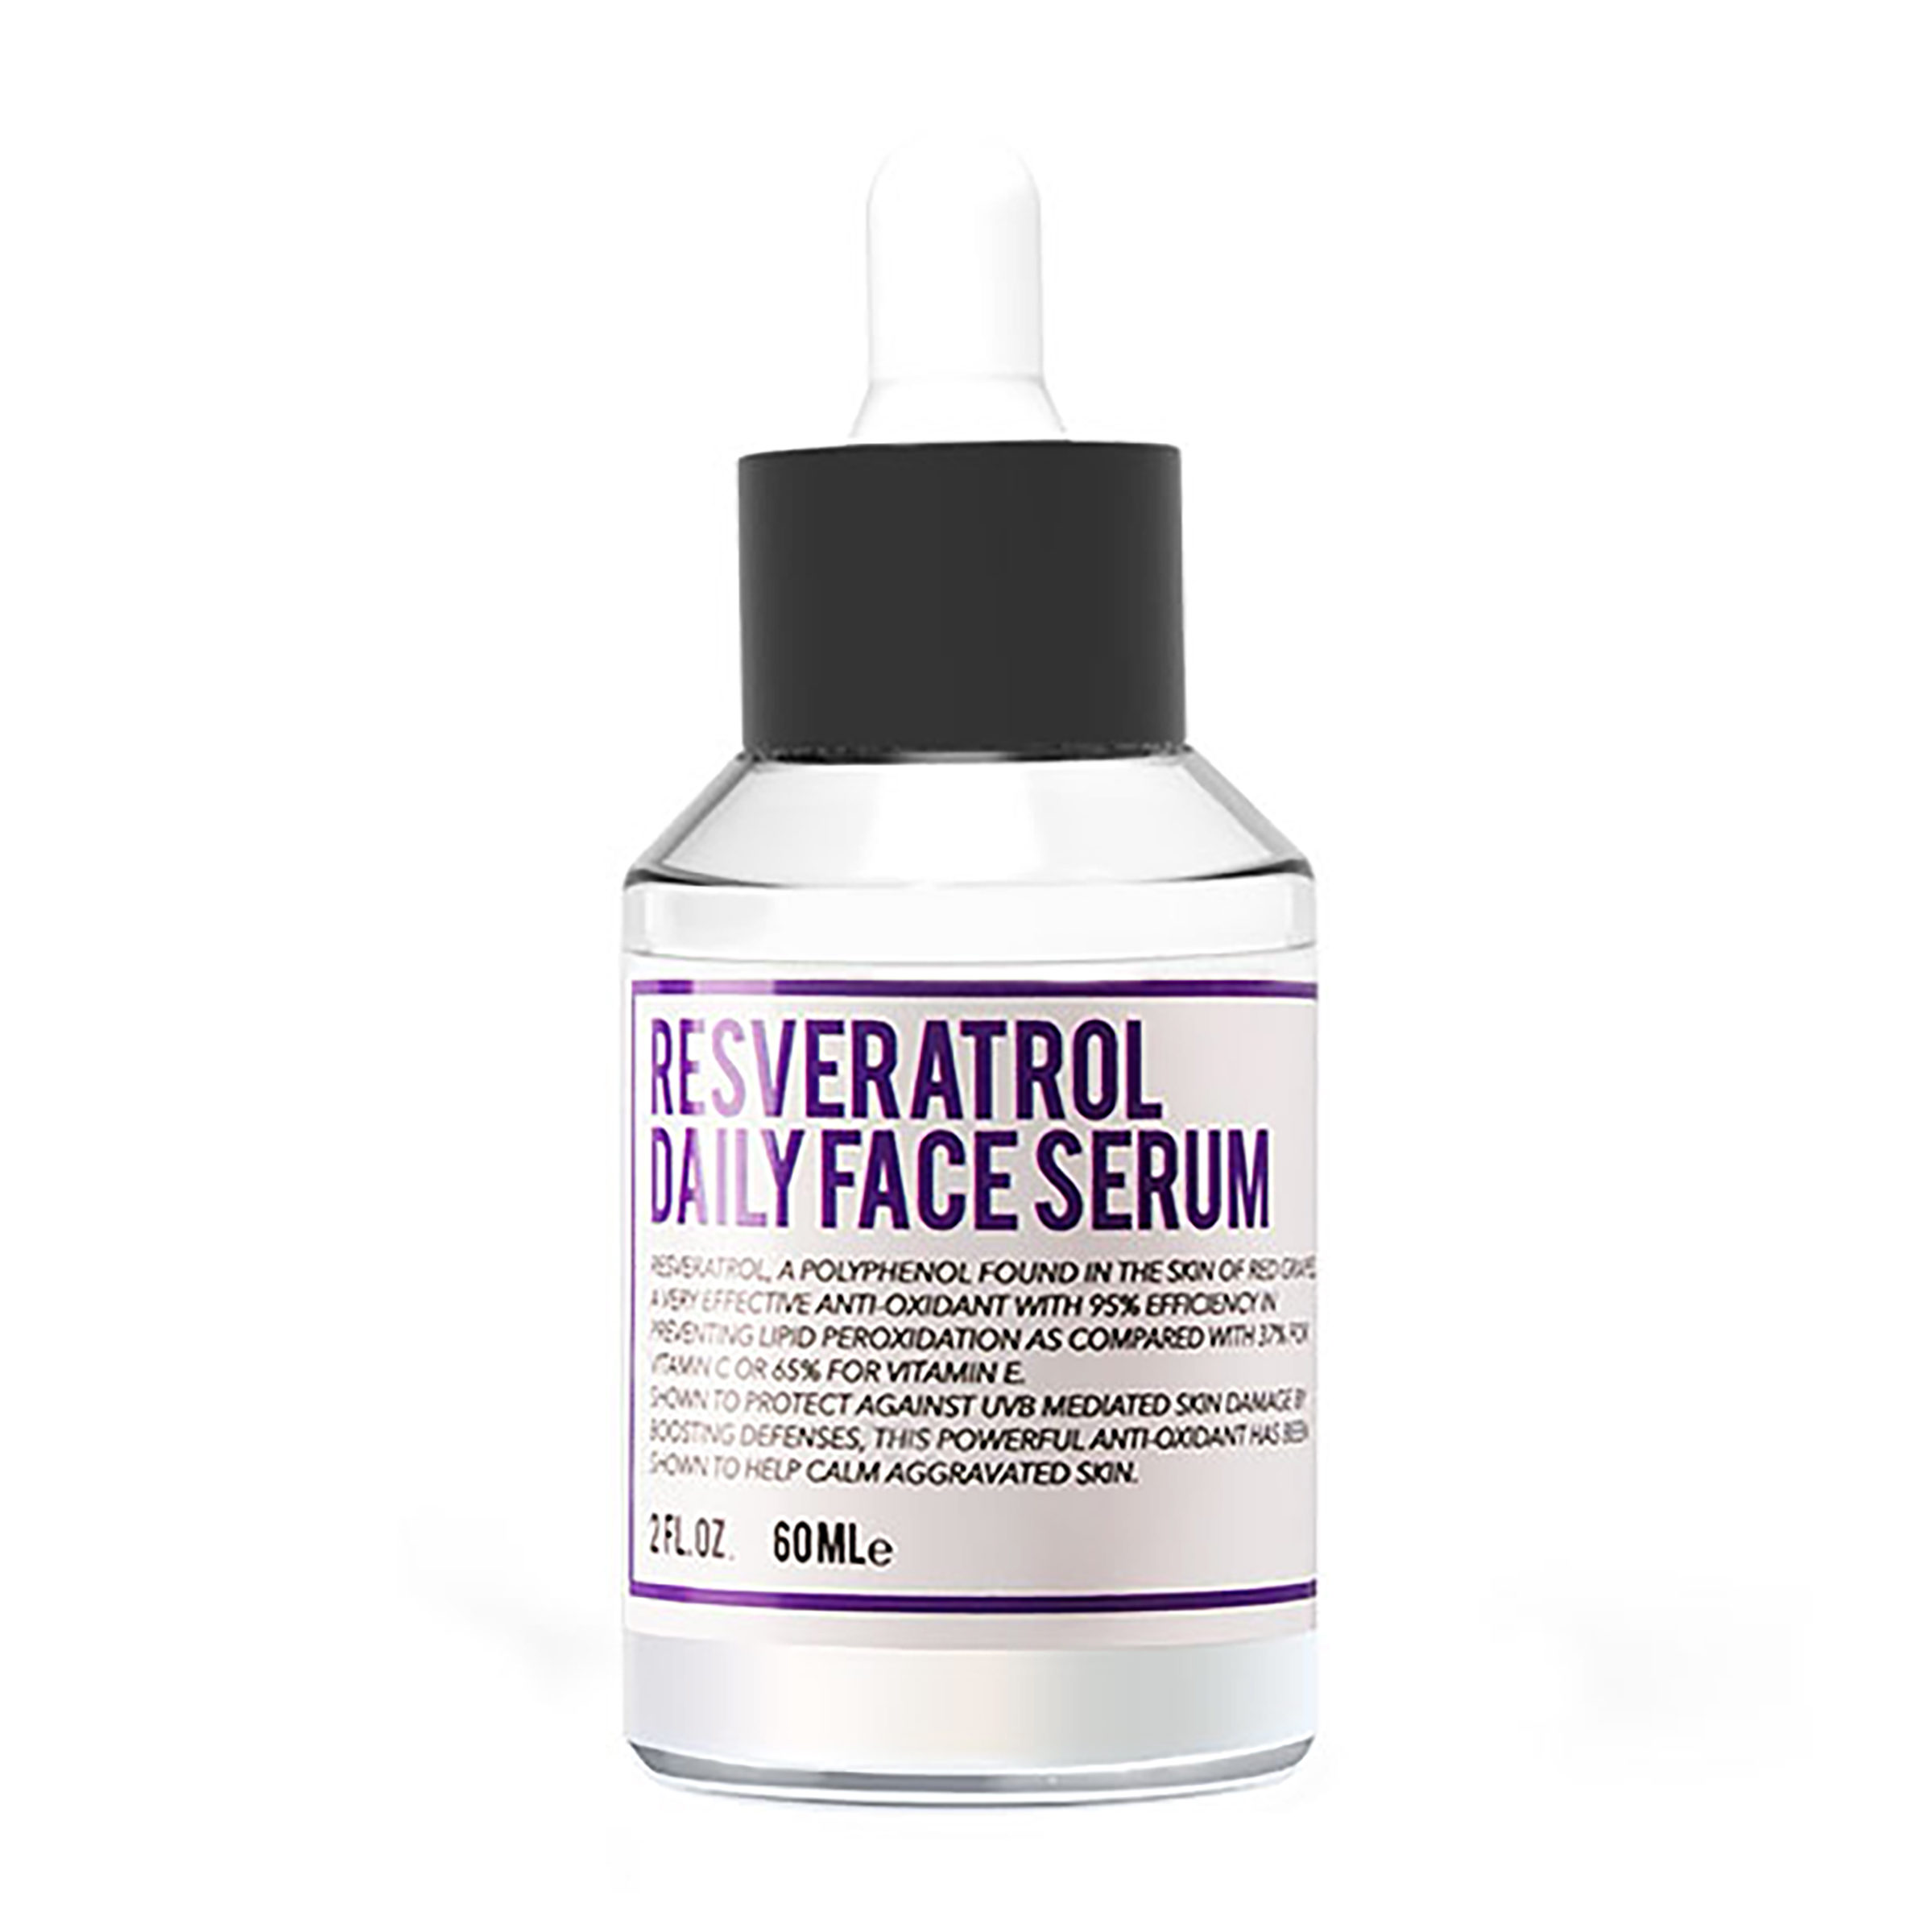 Resveratrol Daily Face Serum The Herbiarie